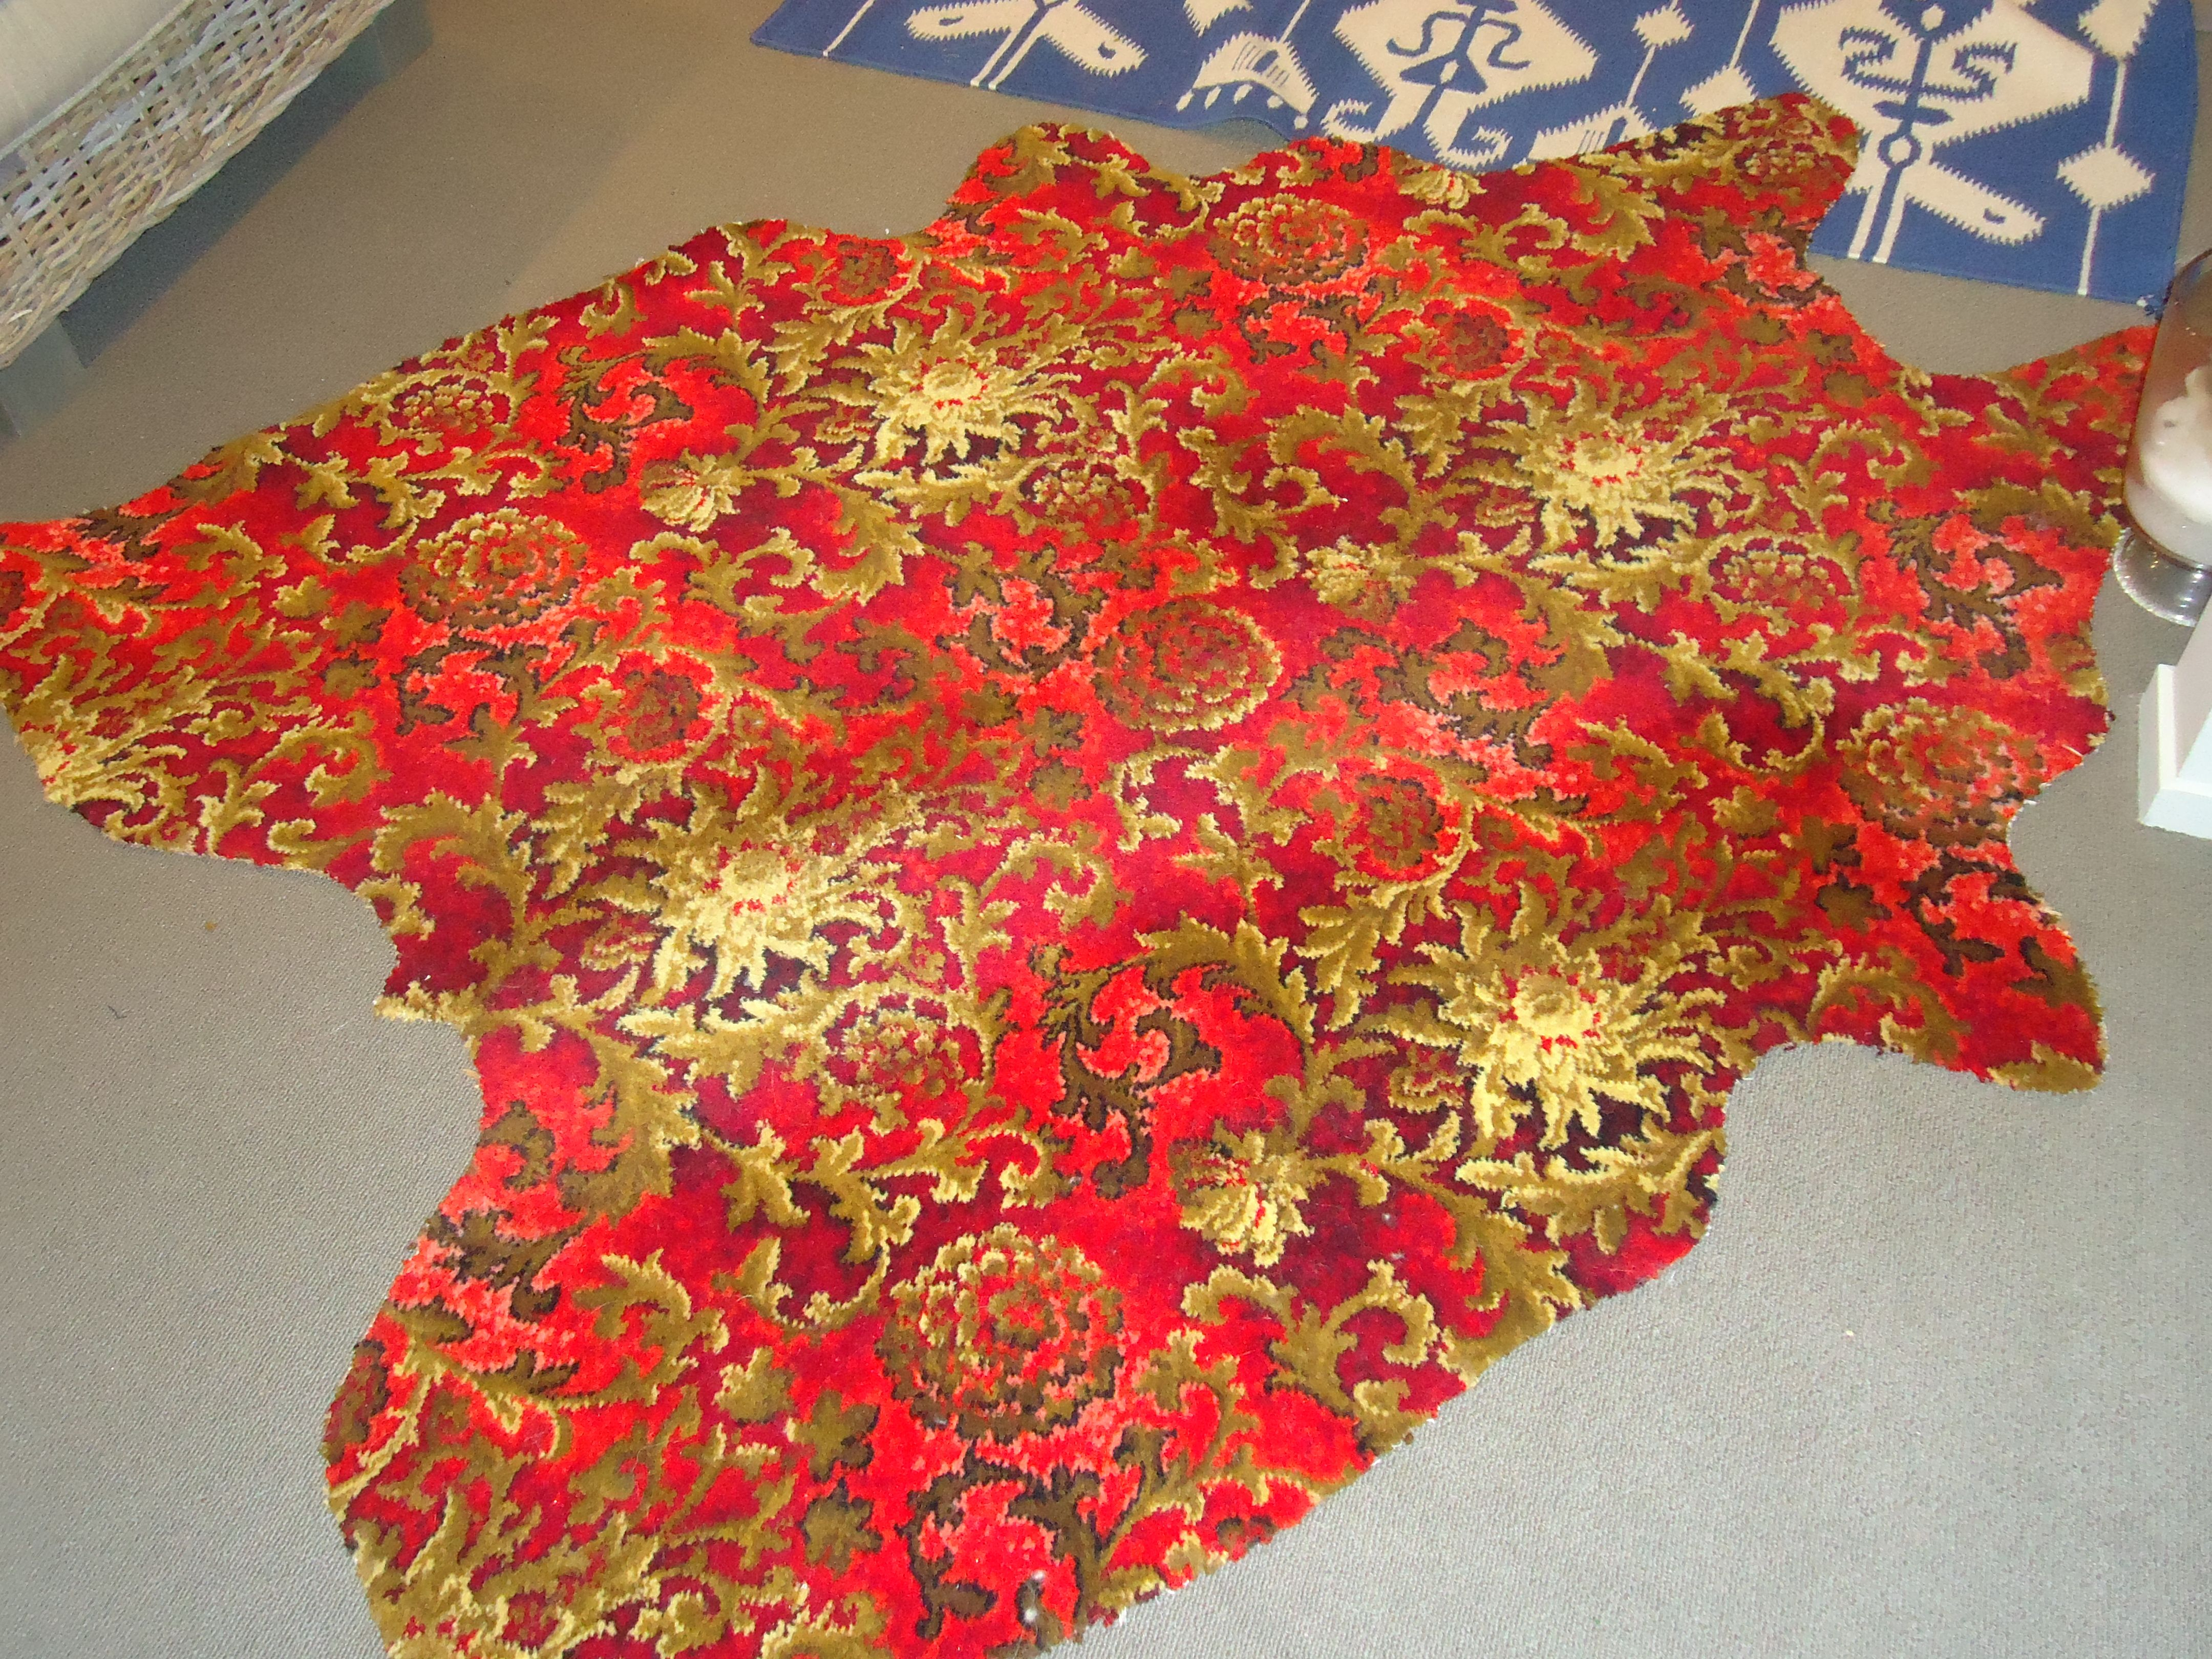 Red And Gold Axminster Carpet   Lets See Carpet new Design